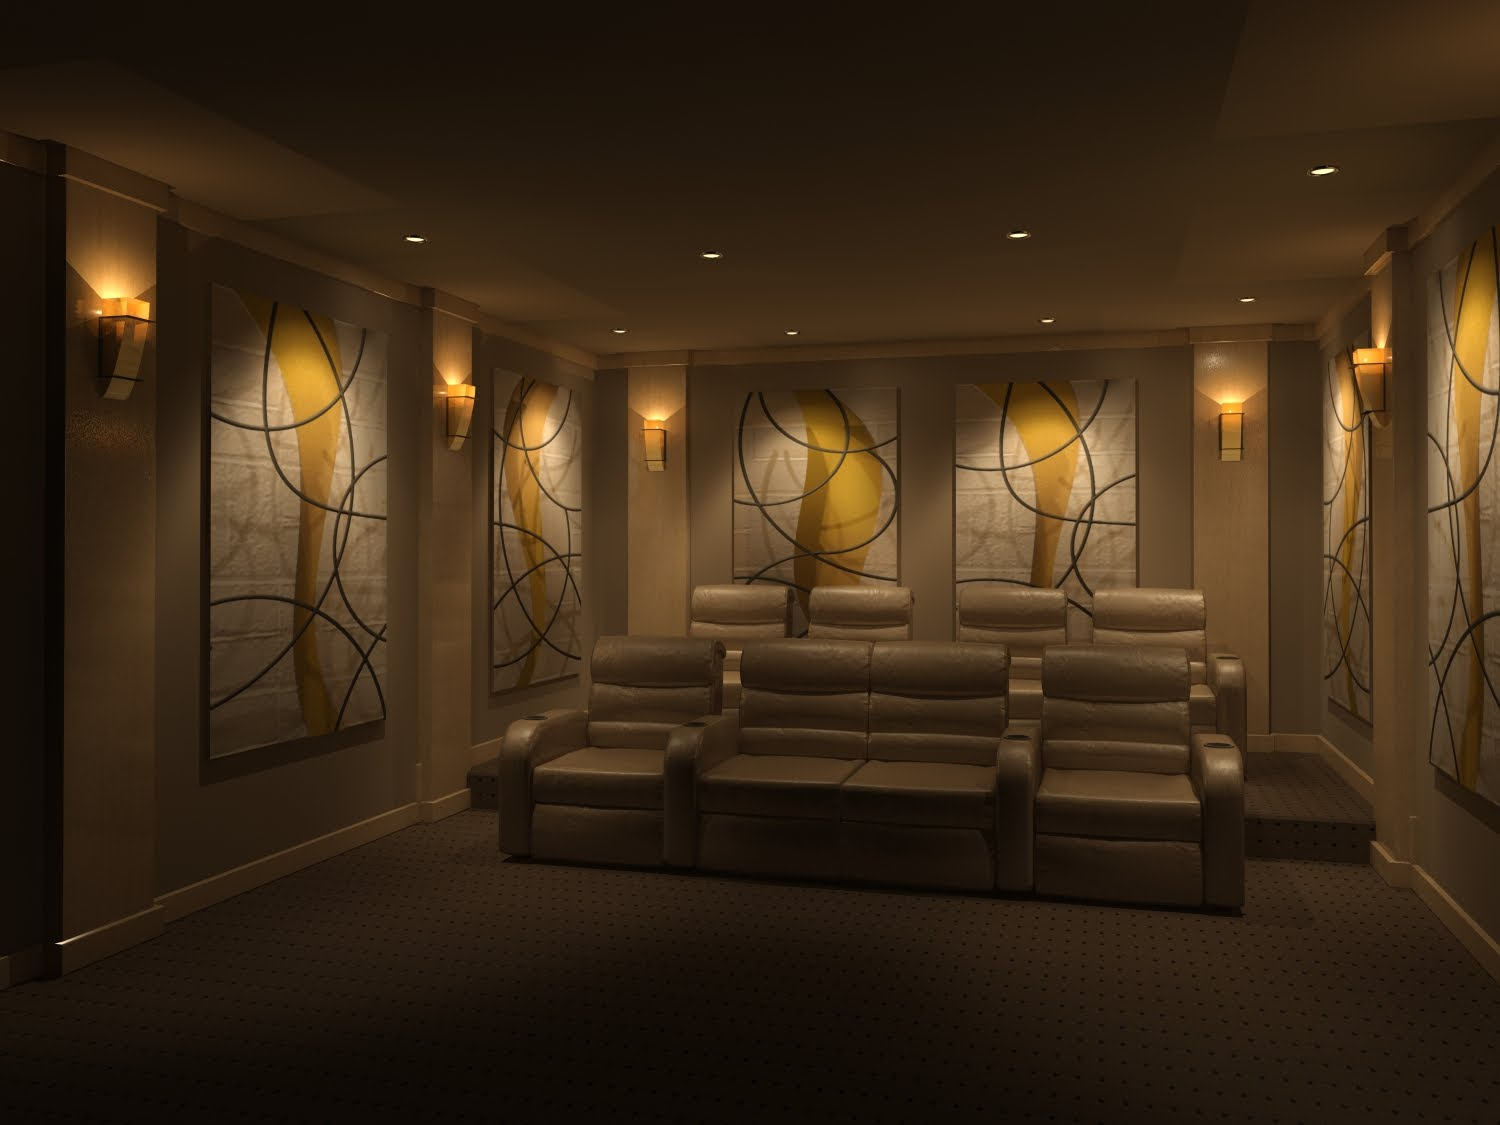 Home theater design and beyond by 3 d squared inc home theater room - Home theater room designs ideas ...